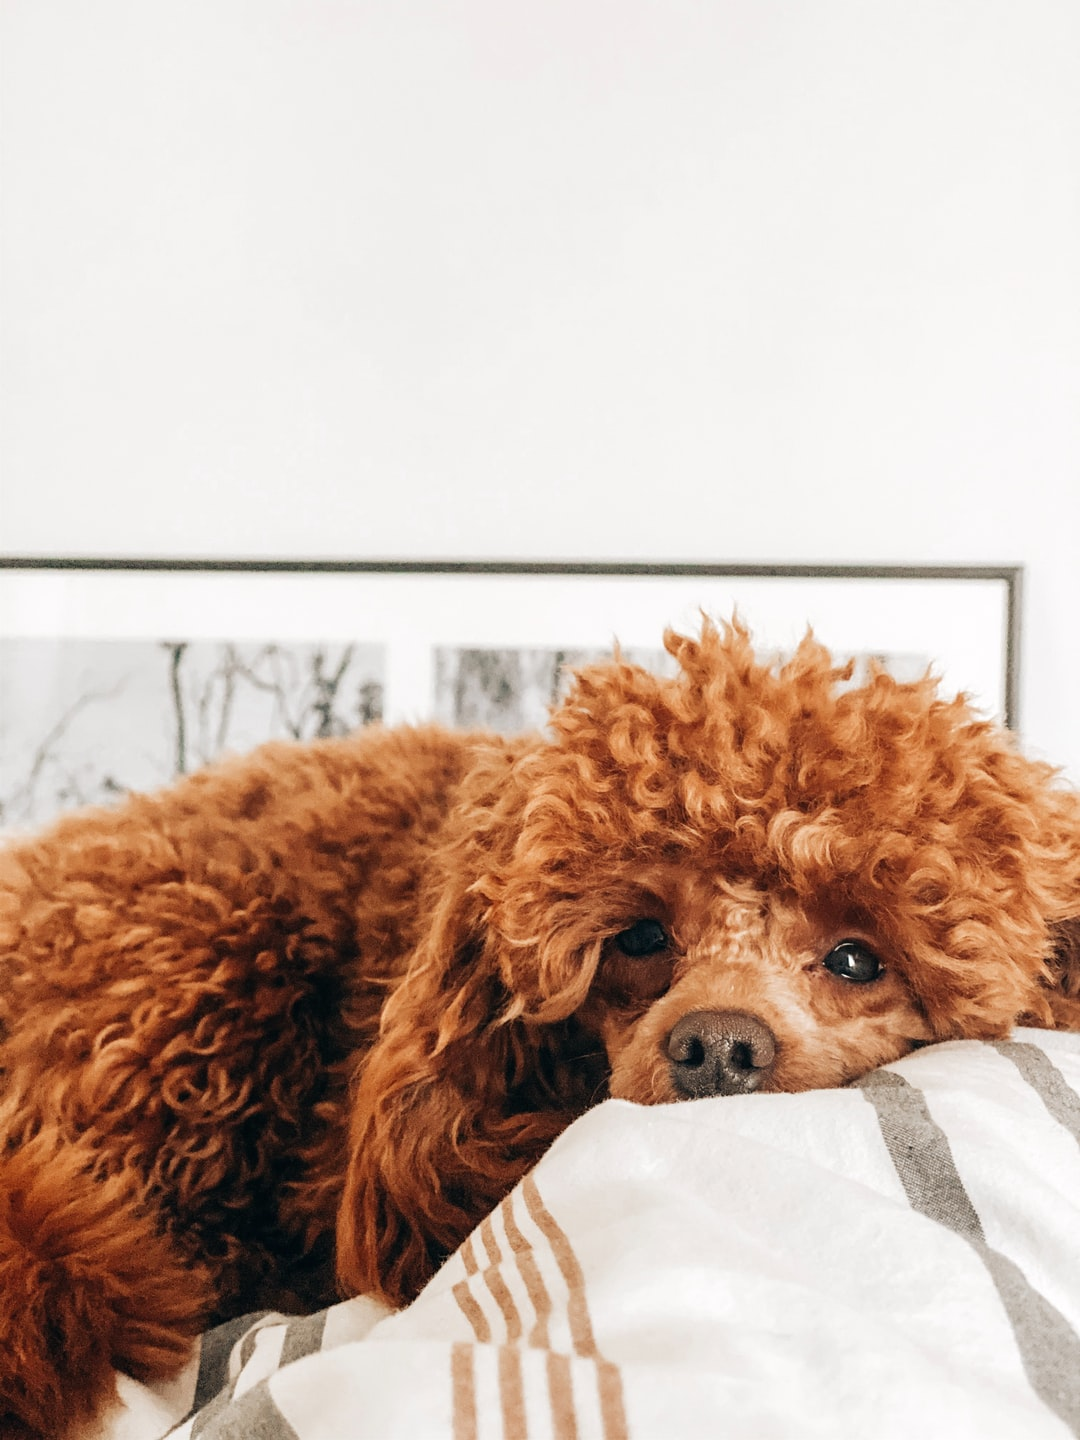 POODLE CARE: A COMPLETE GUIDE TO TAKING CARE OF YOUR POODLE MIX